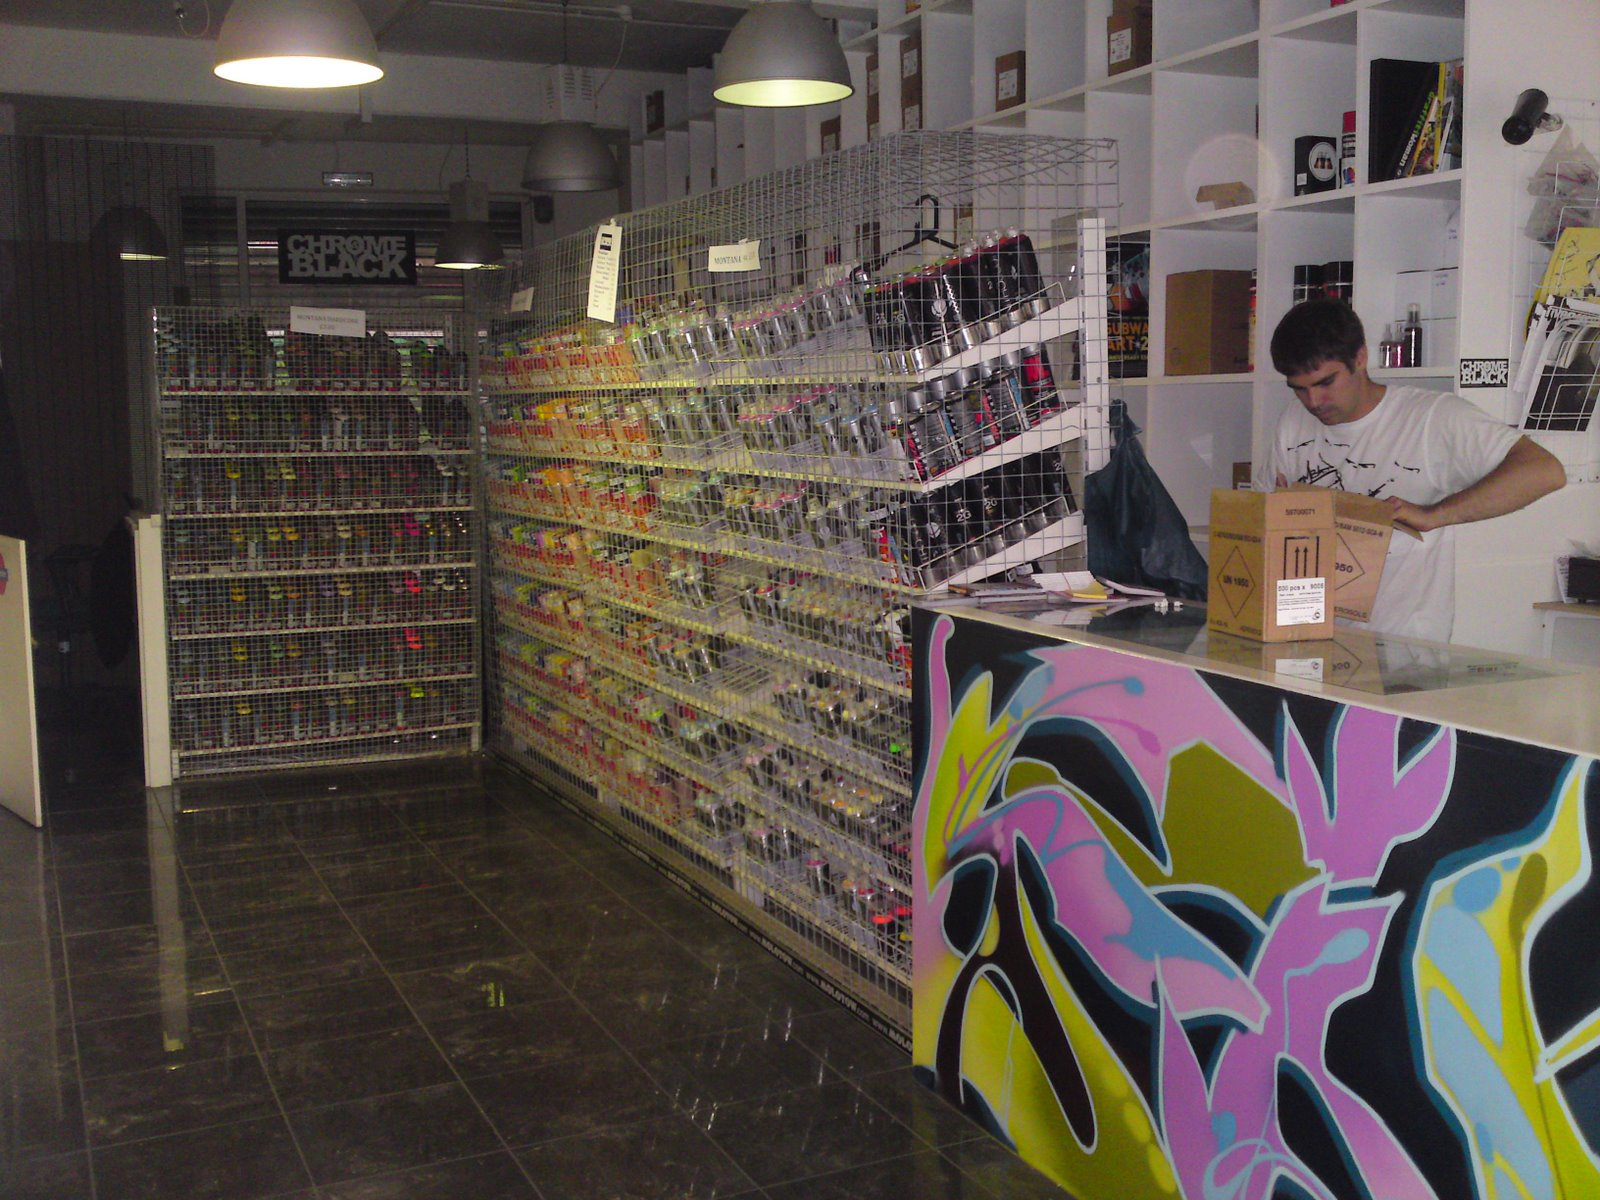 Chrome & Black Graffiti Store | Hookedblog — UK Street Art